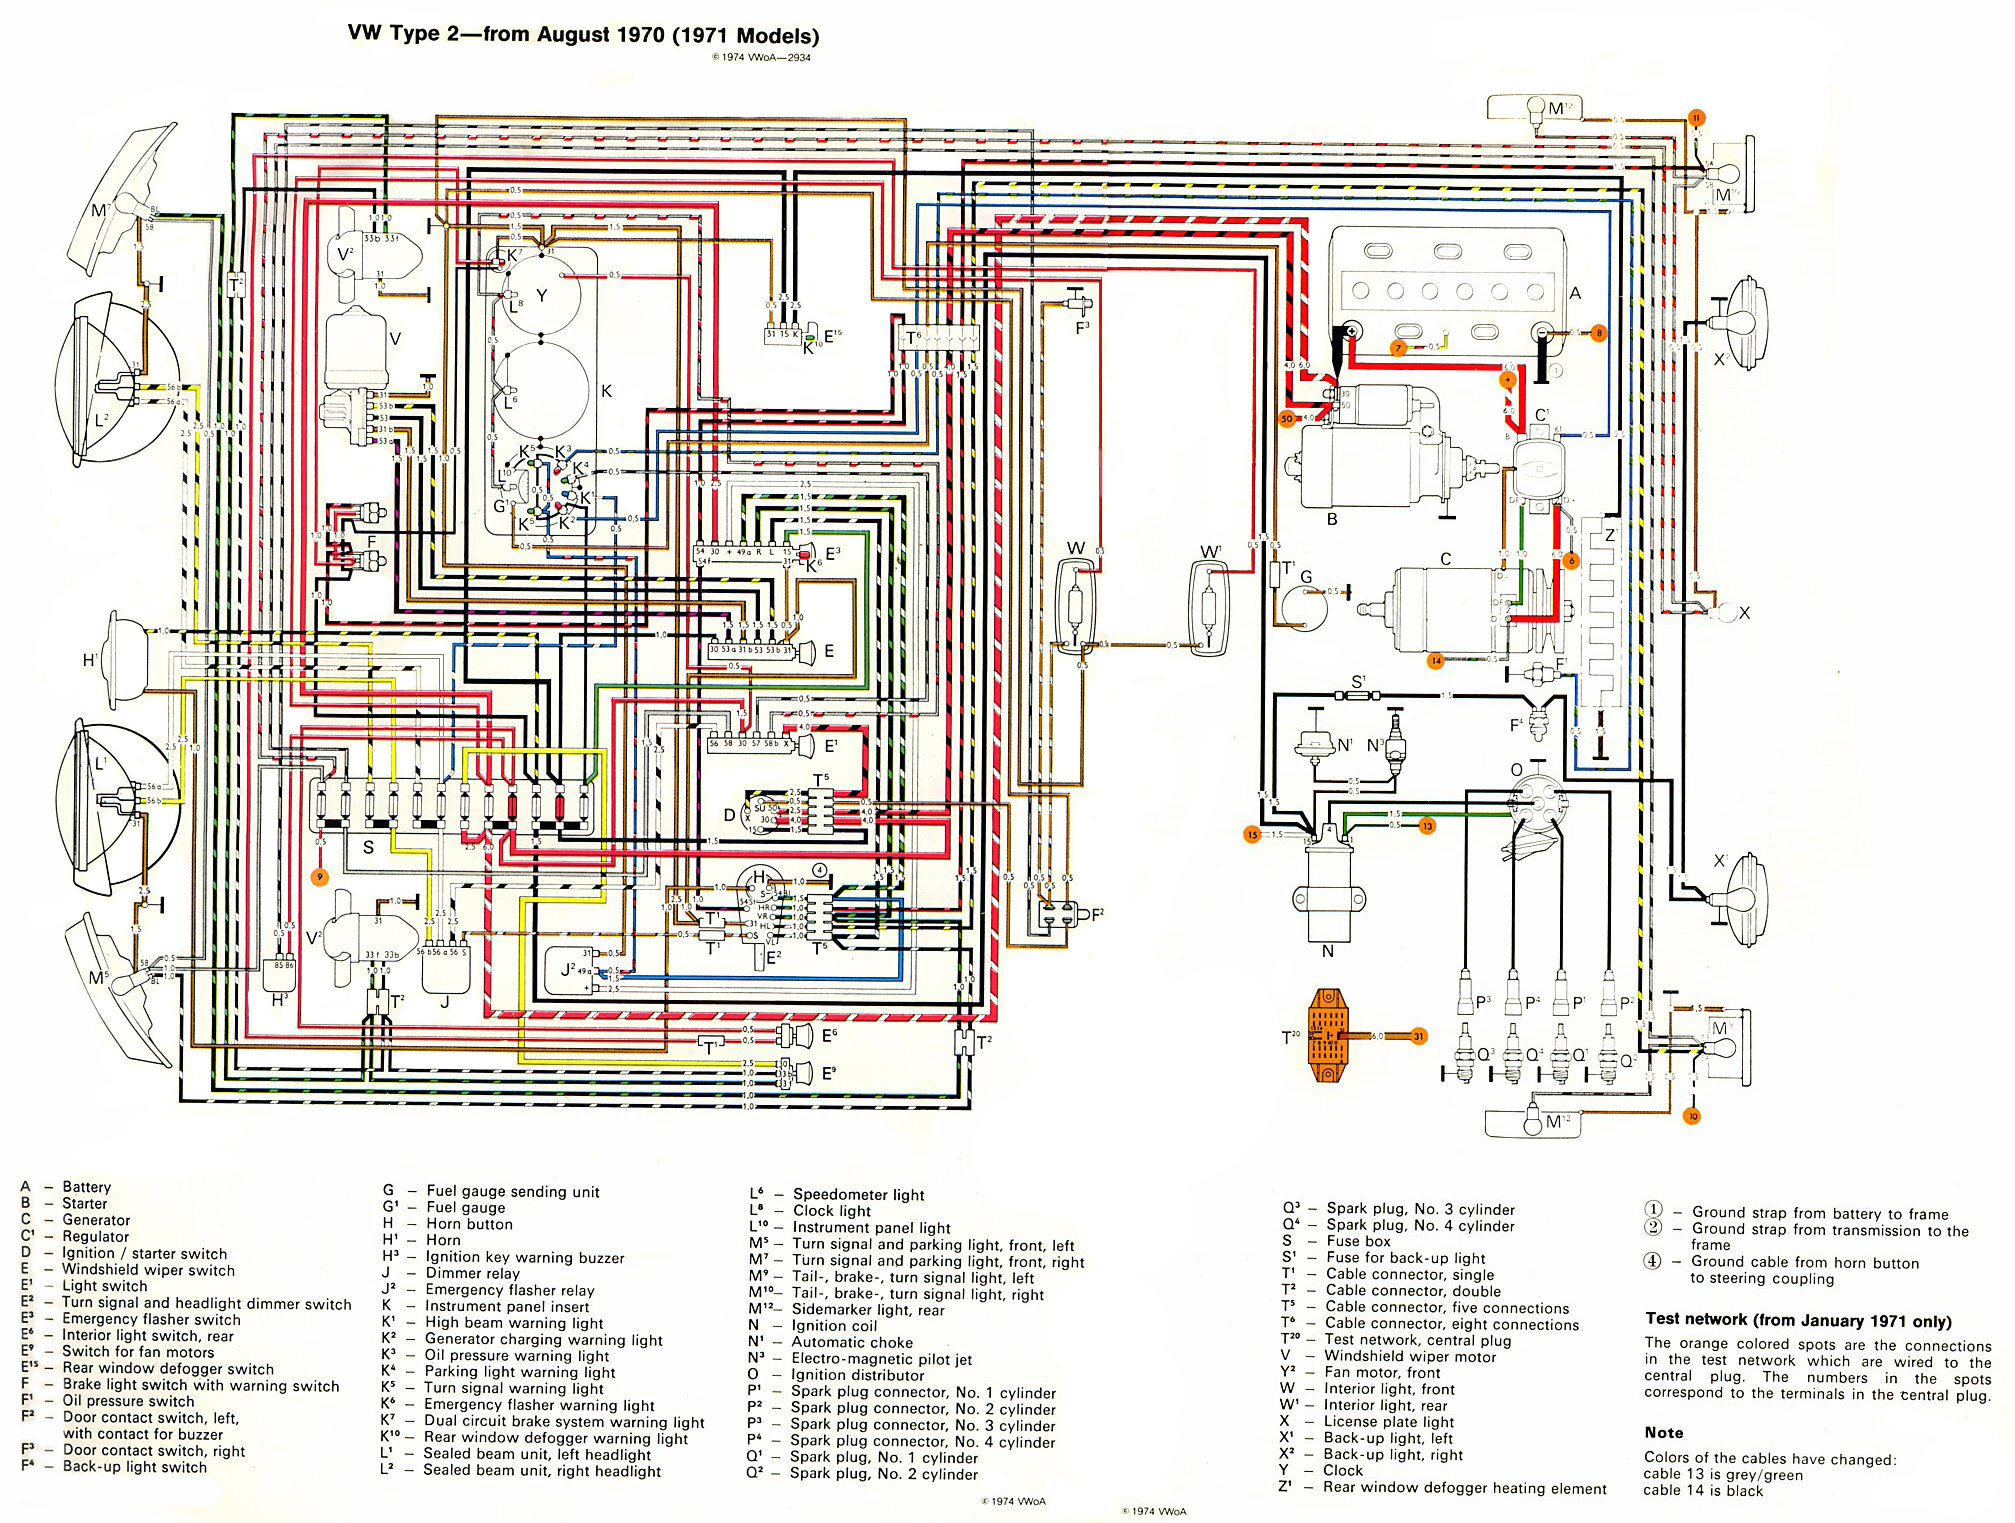 baybus_71_fixed thesamba com type 2 wiring diagrams Dodge Ram Wiring Diagram at mifinder.co